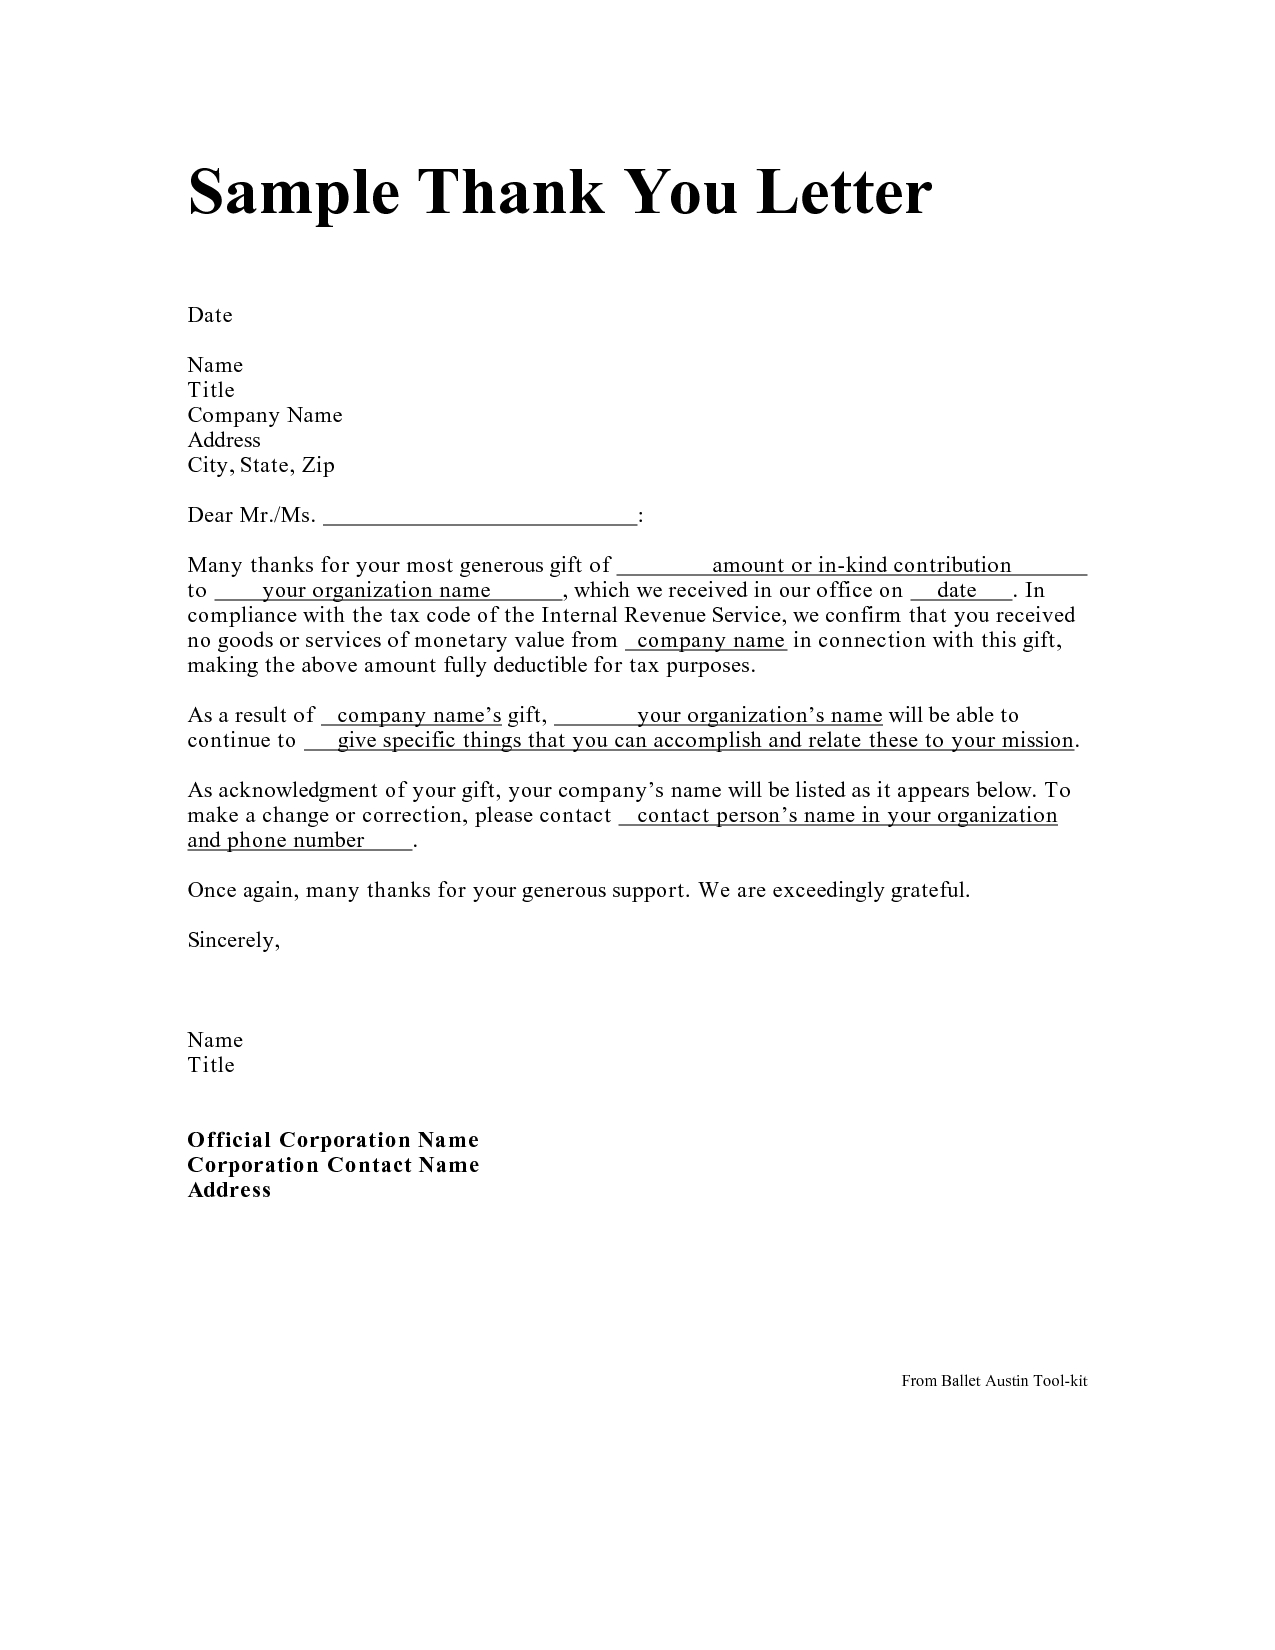 Mission Fundraising Letter Template - Personal Thank You Letter Personal Thank You Letter Samples